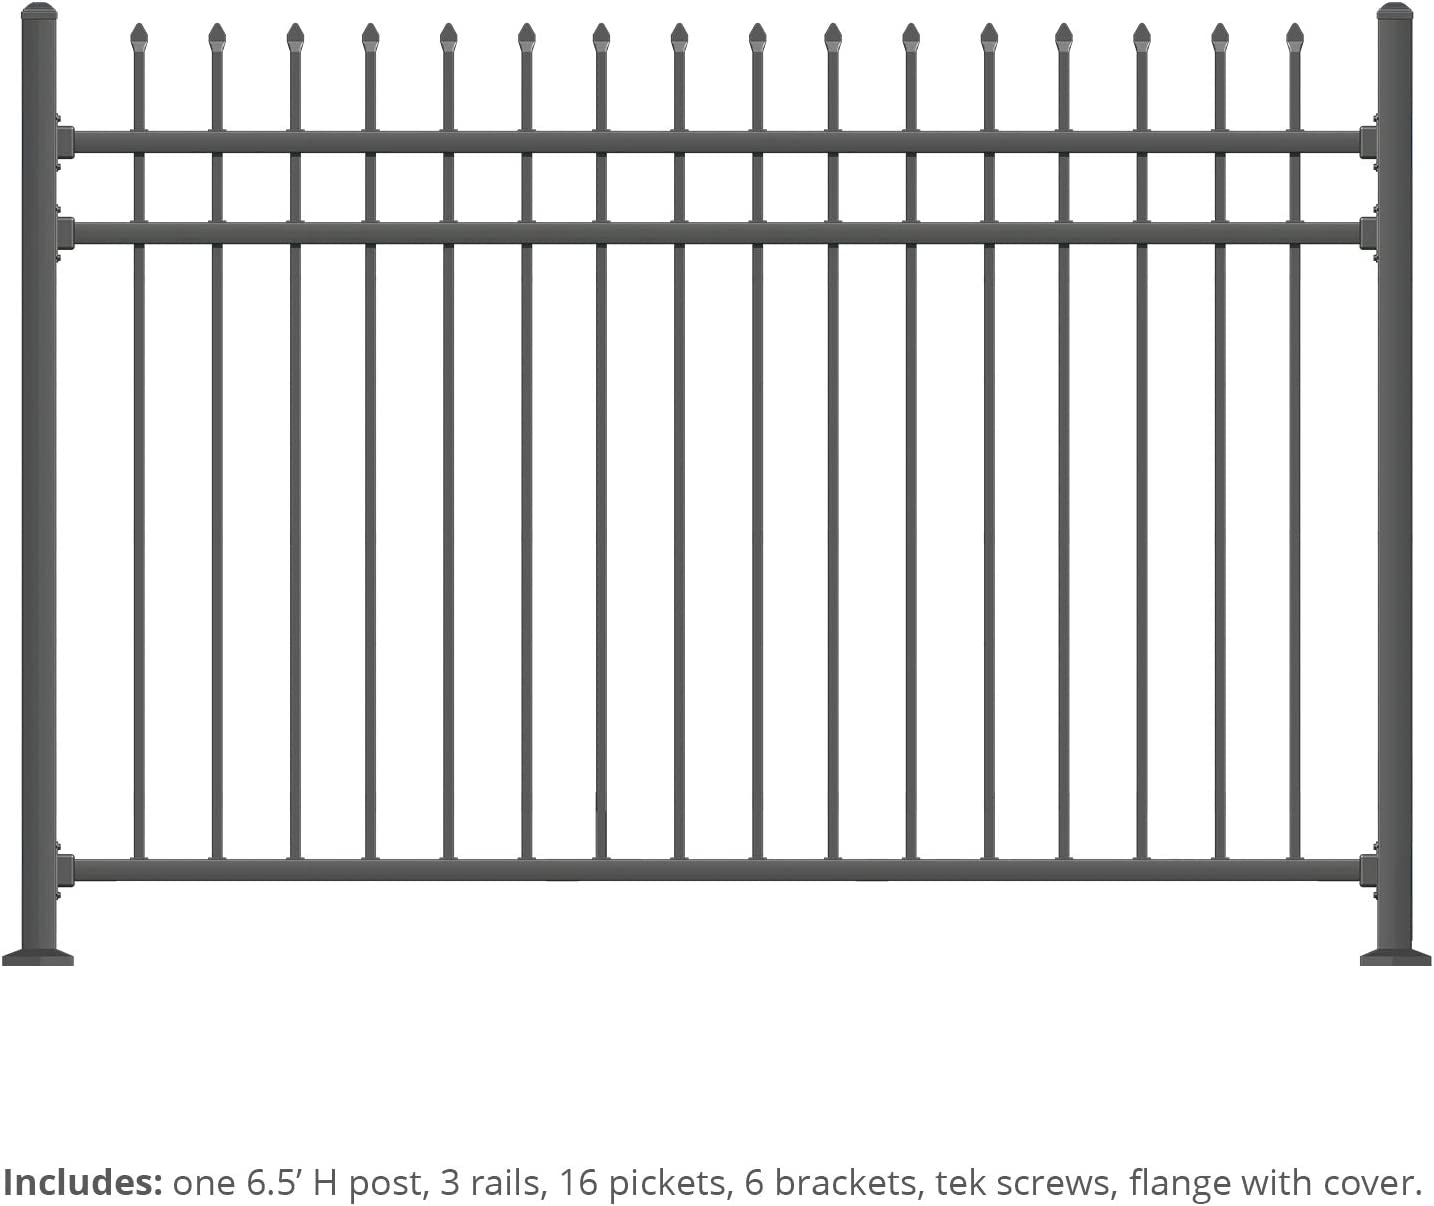 XCEL - Black Steel Fence Panel Aspen Style - 6.5ft W x 5ft H - Outdoor Fencing for Yard, Garden, Swimming Pool, on Concrete or Soil, 3-Rail Rackable, One Post Included, Powder-Coated Mental Fence